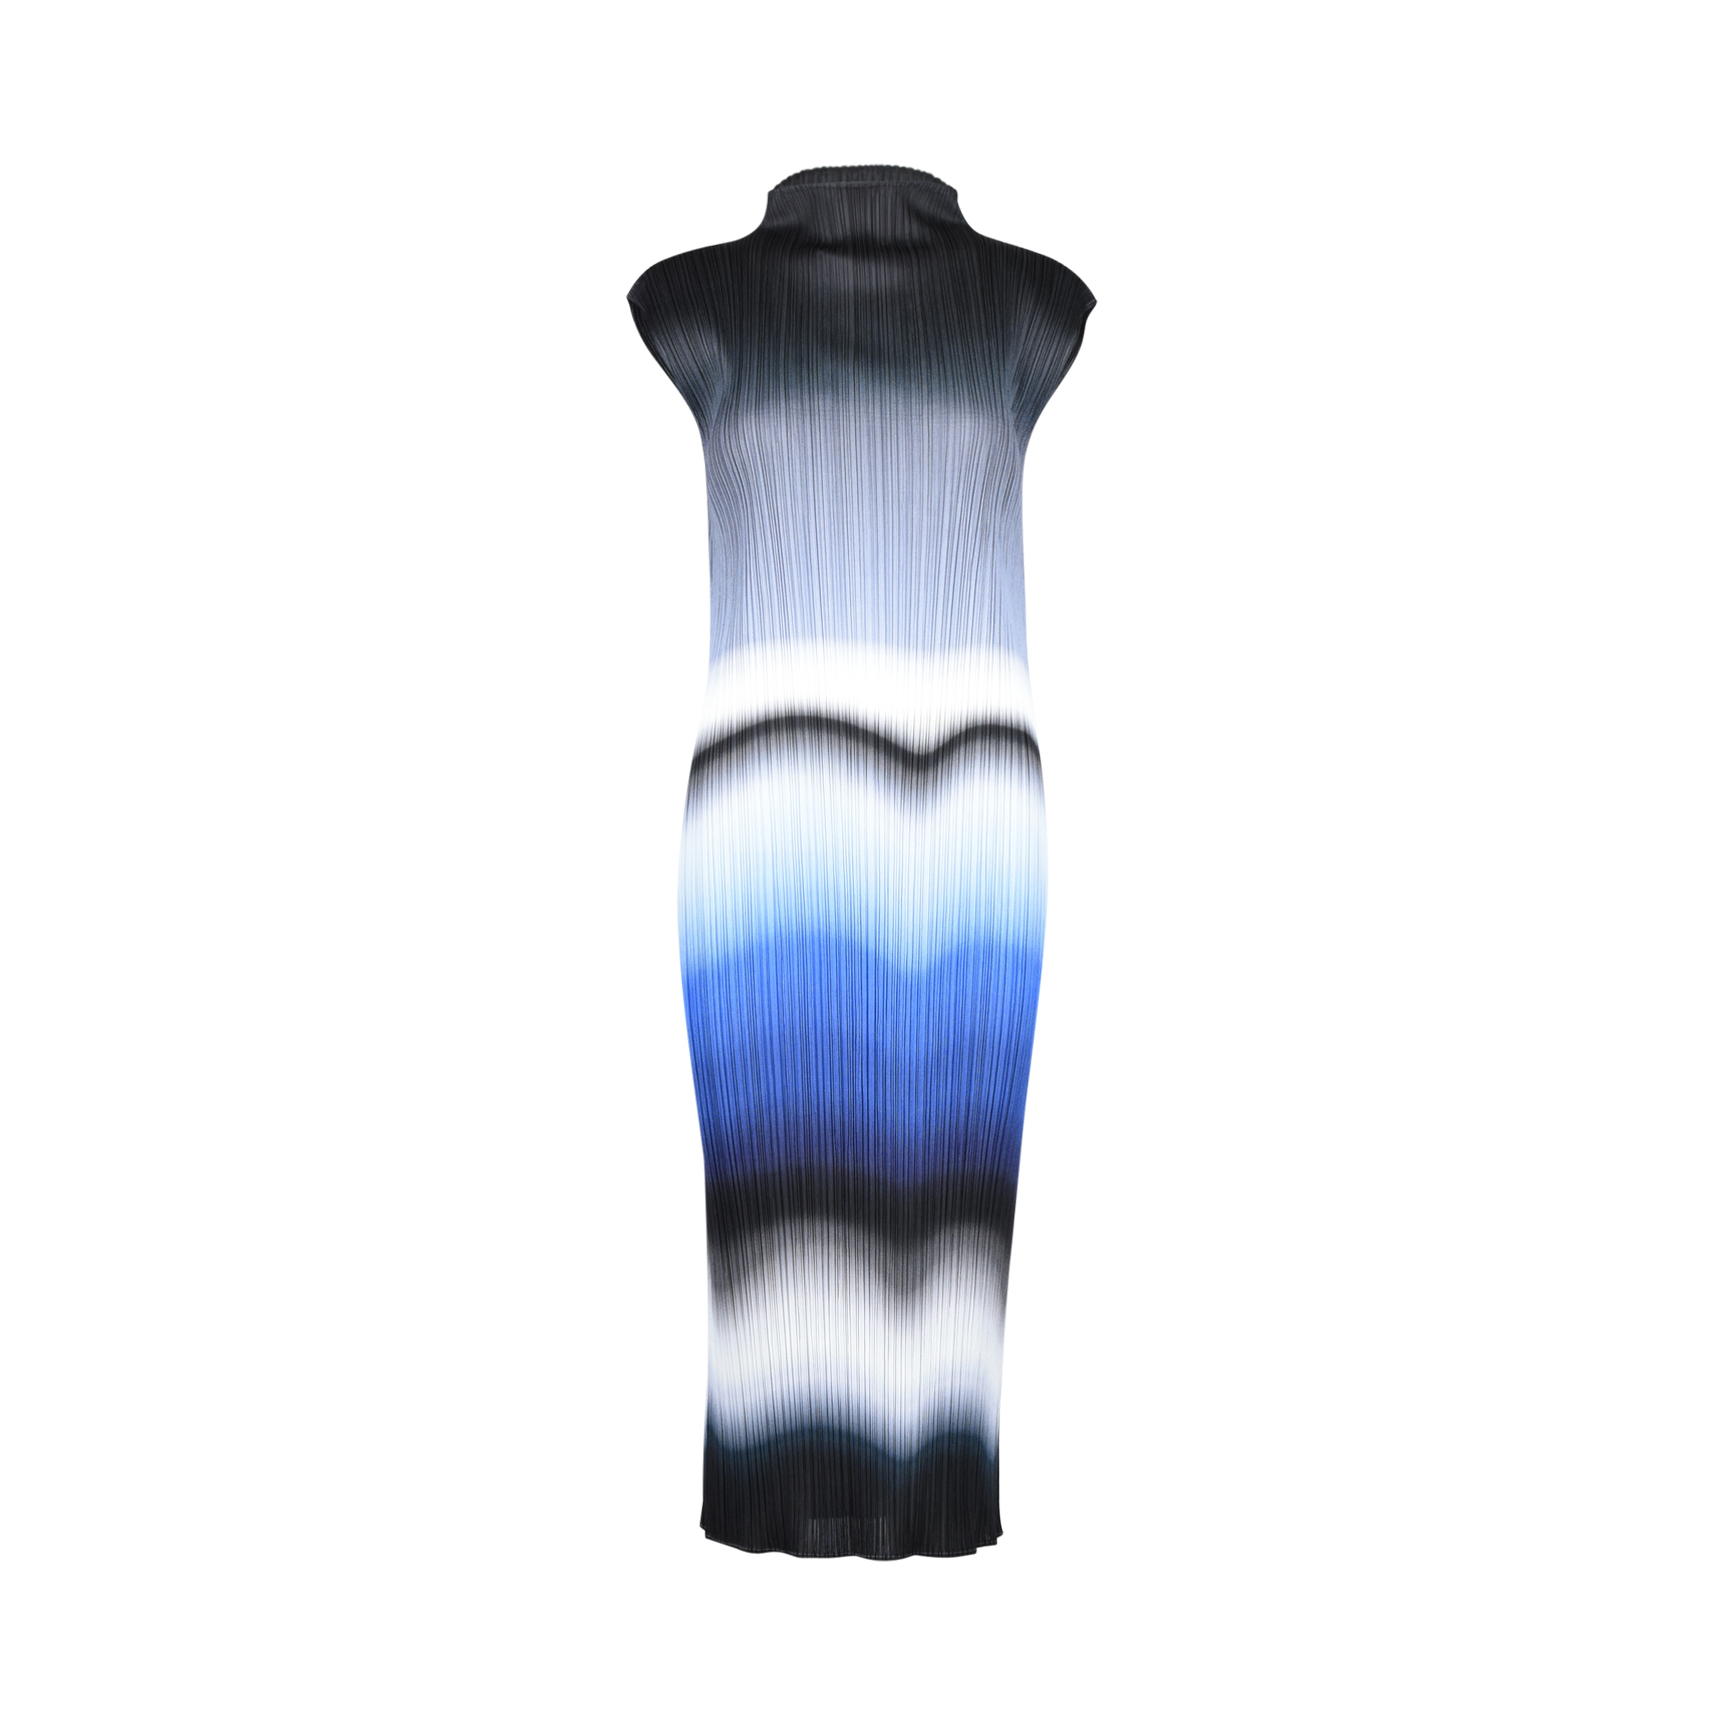 f1e54e40f5 Authentic Second Hand Pleats Please Ombre High-neck Dress (PSS-385-00006) -  THE FIFTH COLLECTION